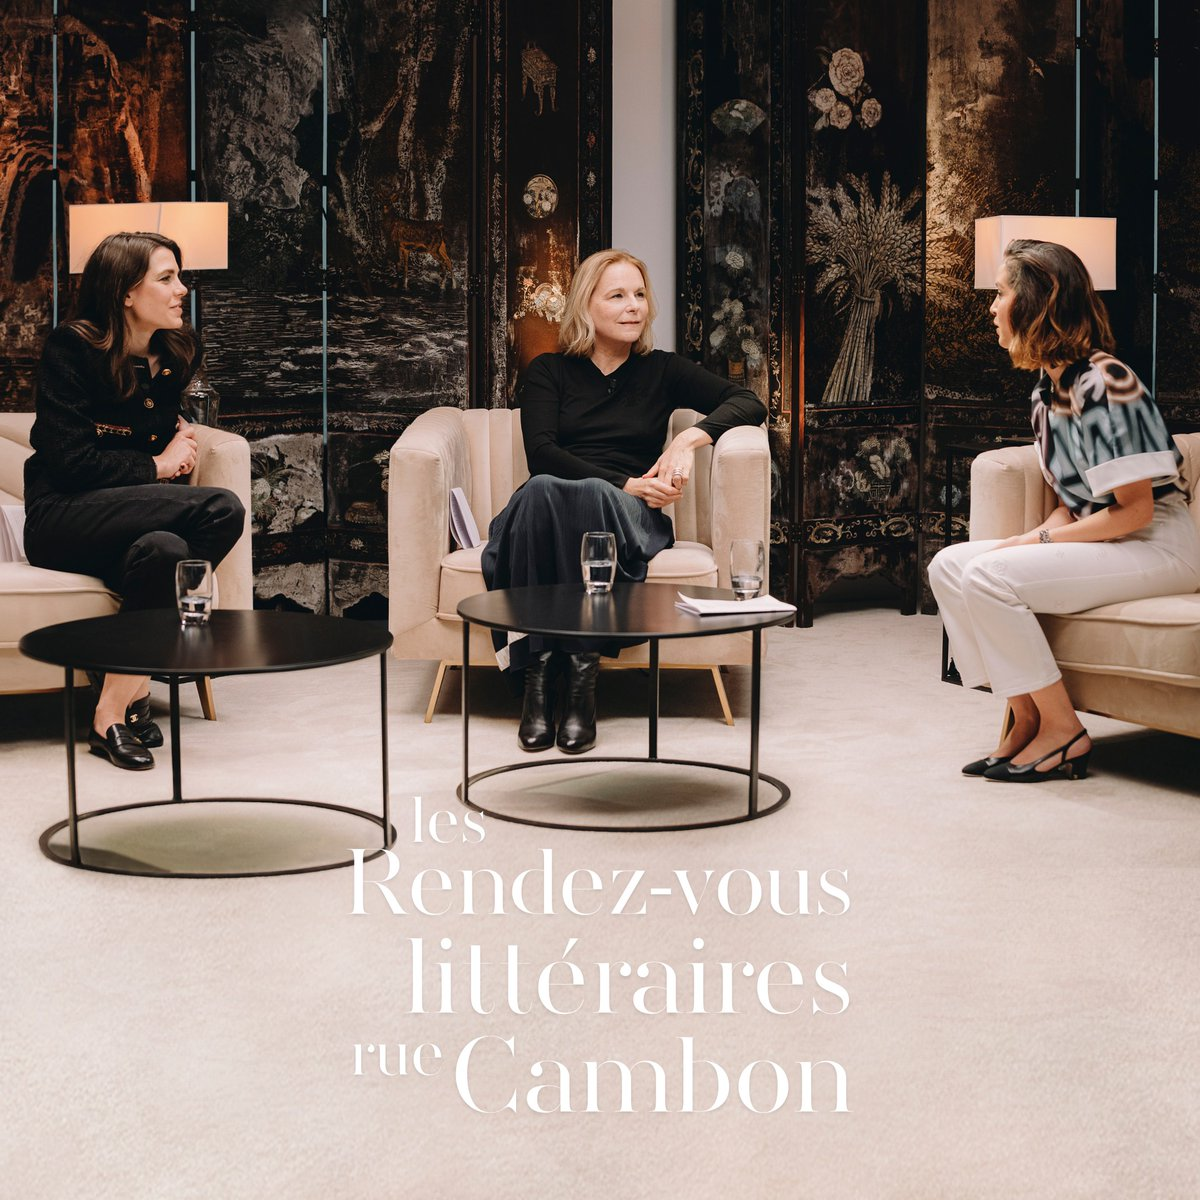 For the second edition of the Rendez-vous littéraires rue Cambon, CHANEL and Charlotte Casiraghi have invited the writer Camille Laurens alongside the actress Lyna Khoudri and the literary historian Fanny Arama. See more at  #CHANELRendezvousLitteraires